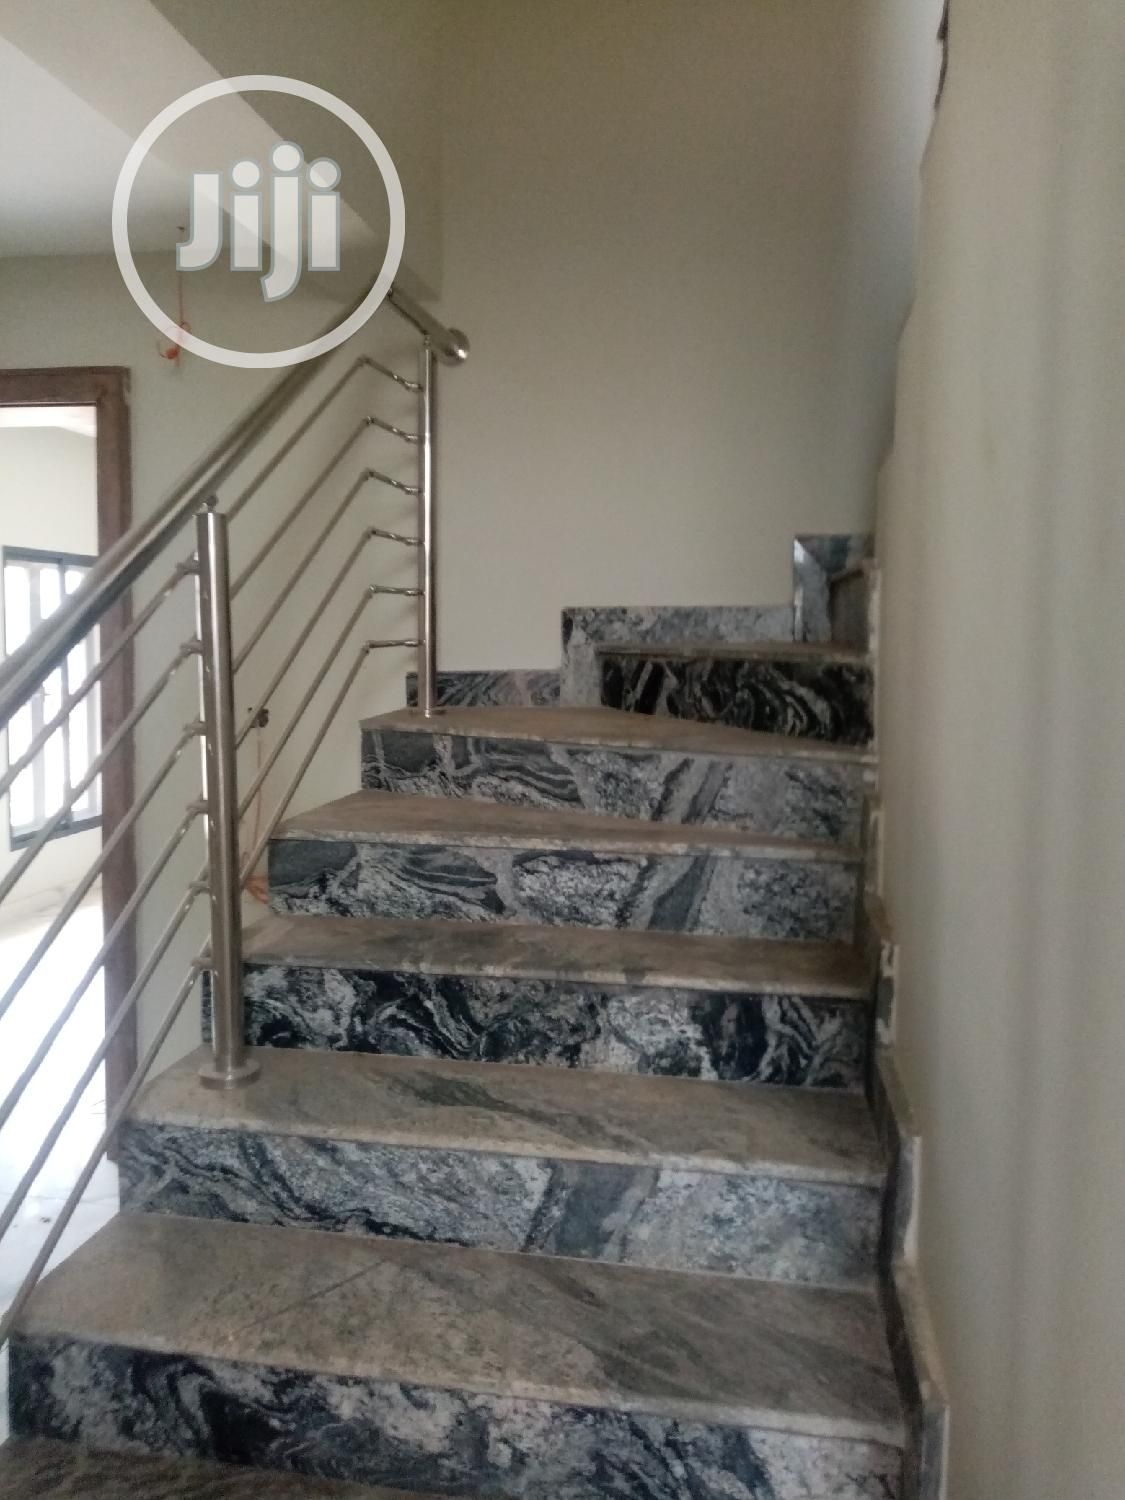 4bedrooms Terrace Duplex With Attached Bq Maid Room   Houses & Apartments For Sale for sale in Wuye, Abuja (FCT) State, Nigeria